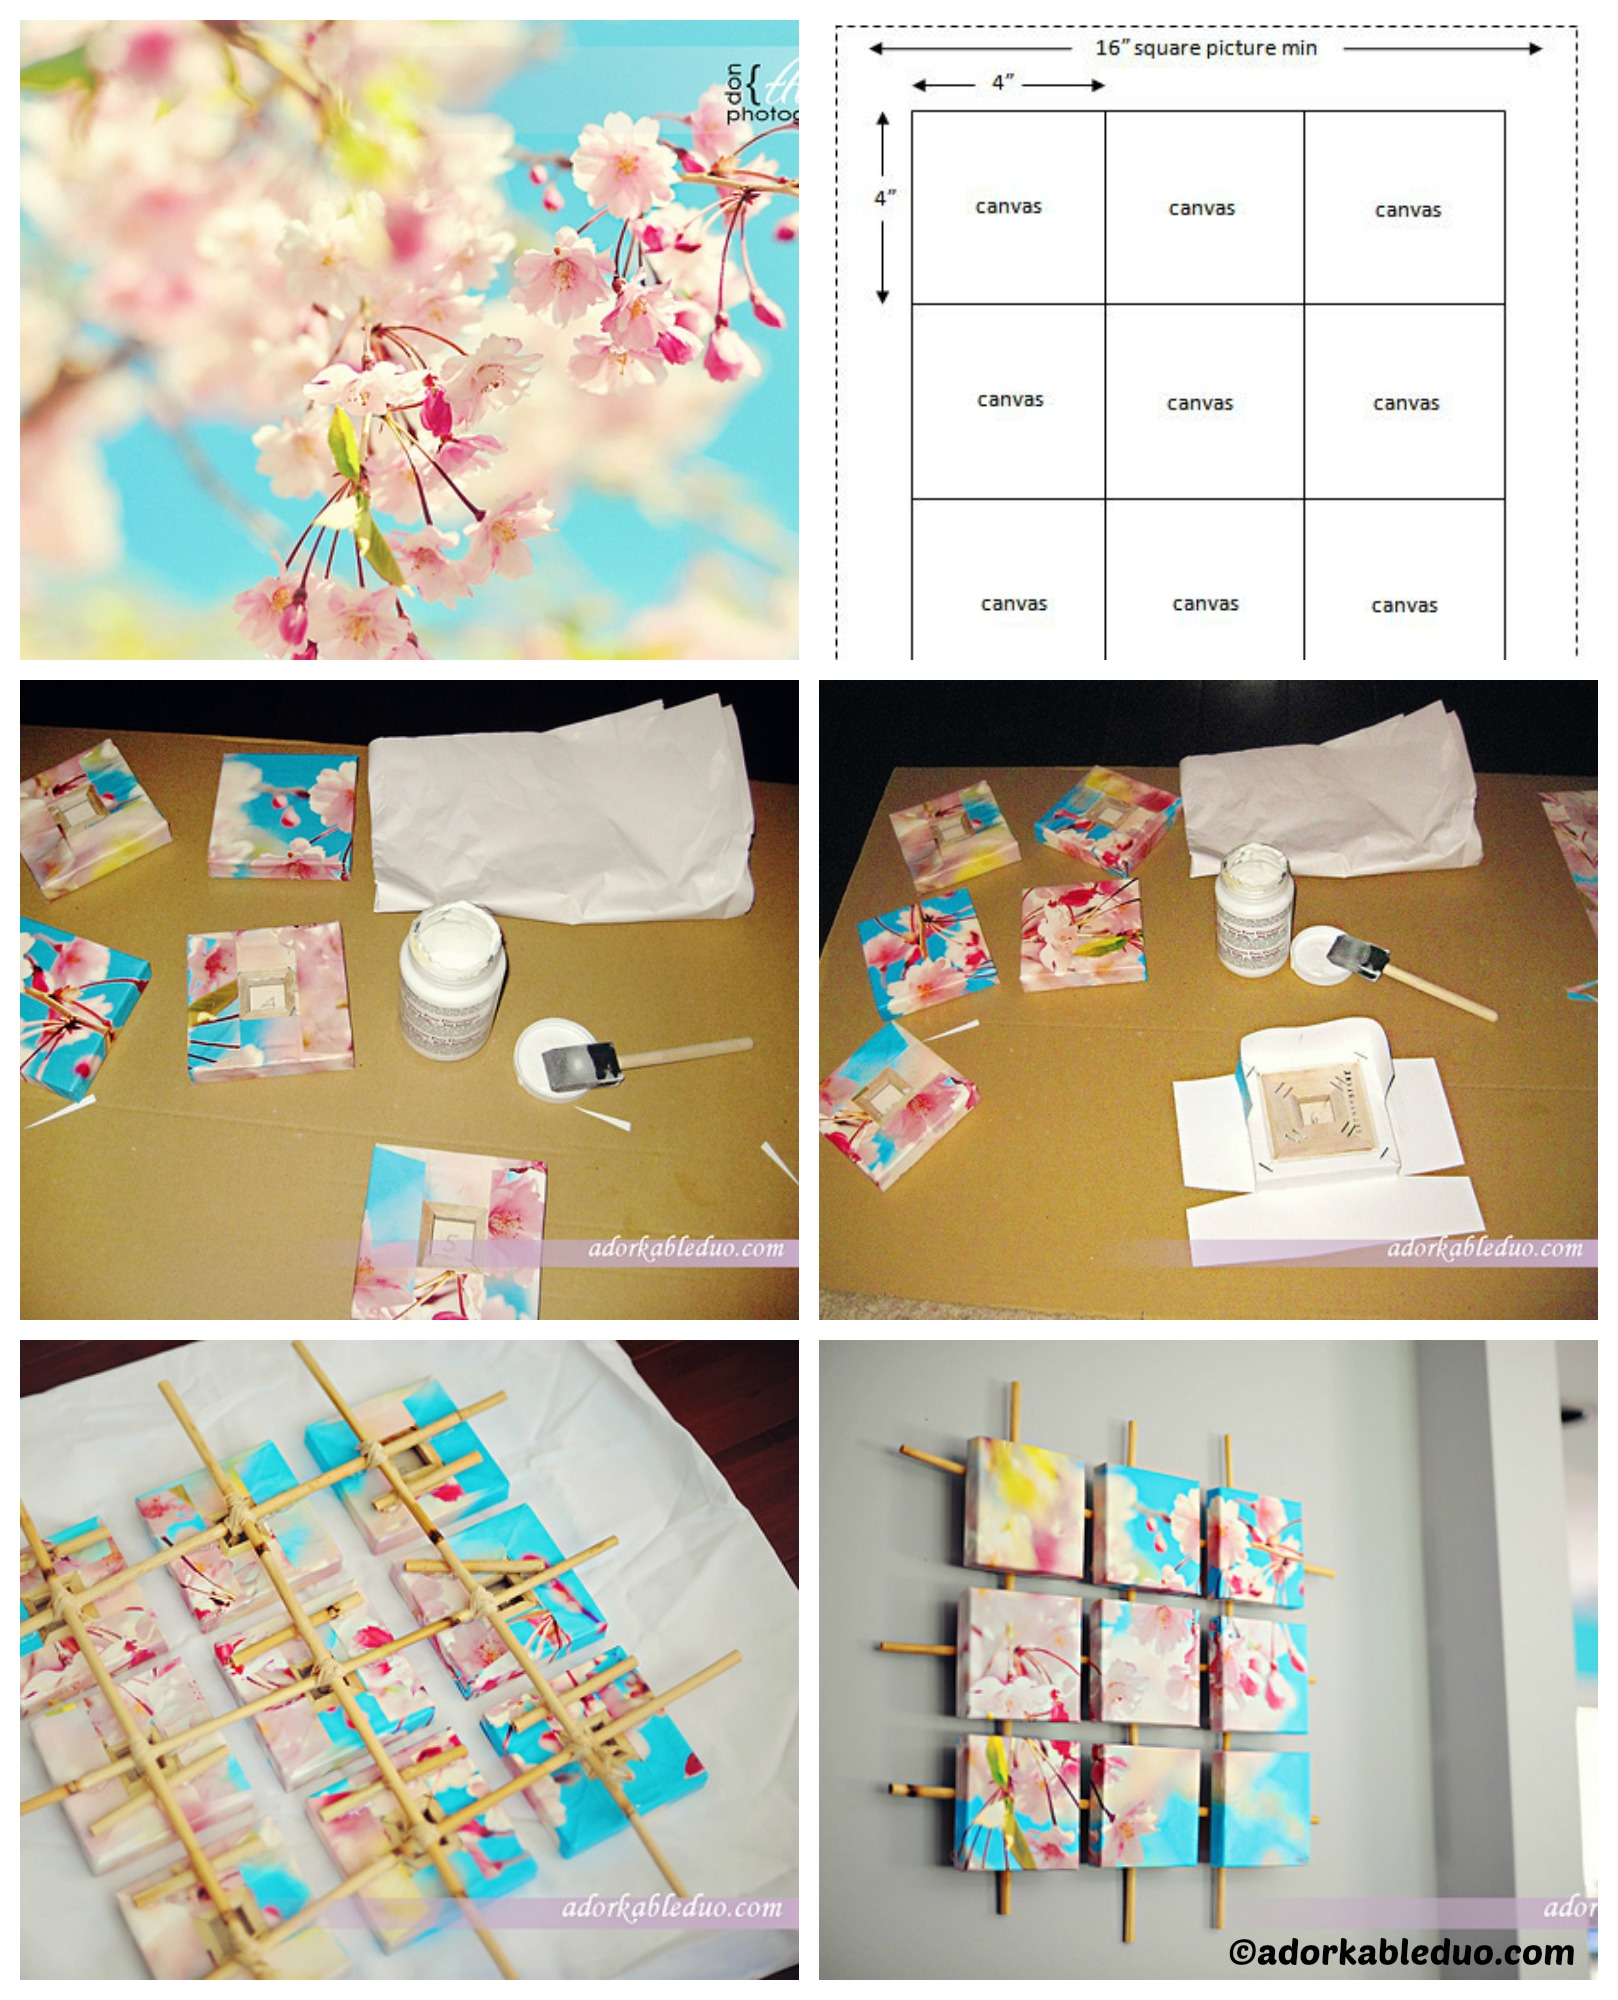 How to make Sectioned Canvas Wall Art